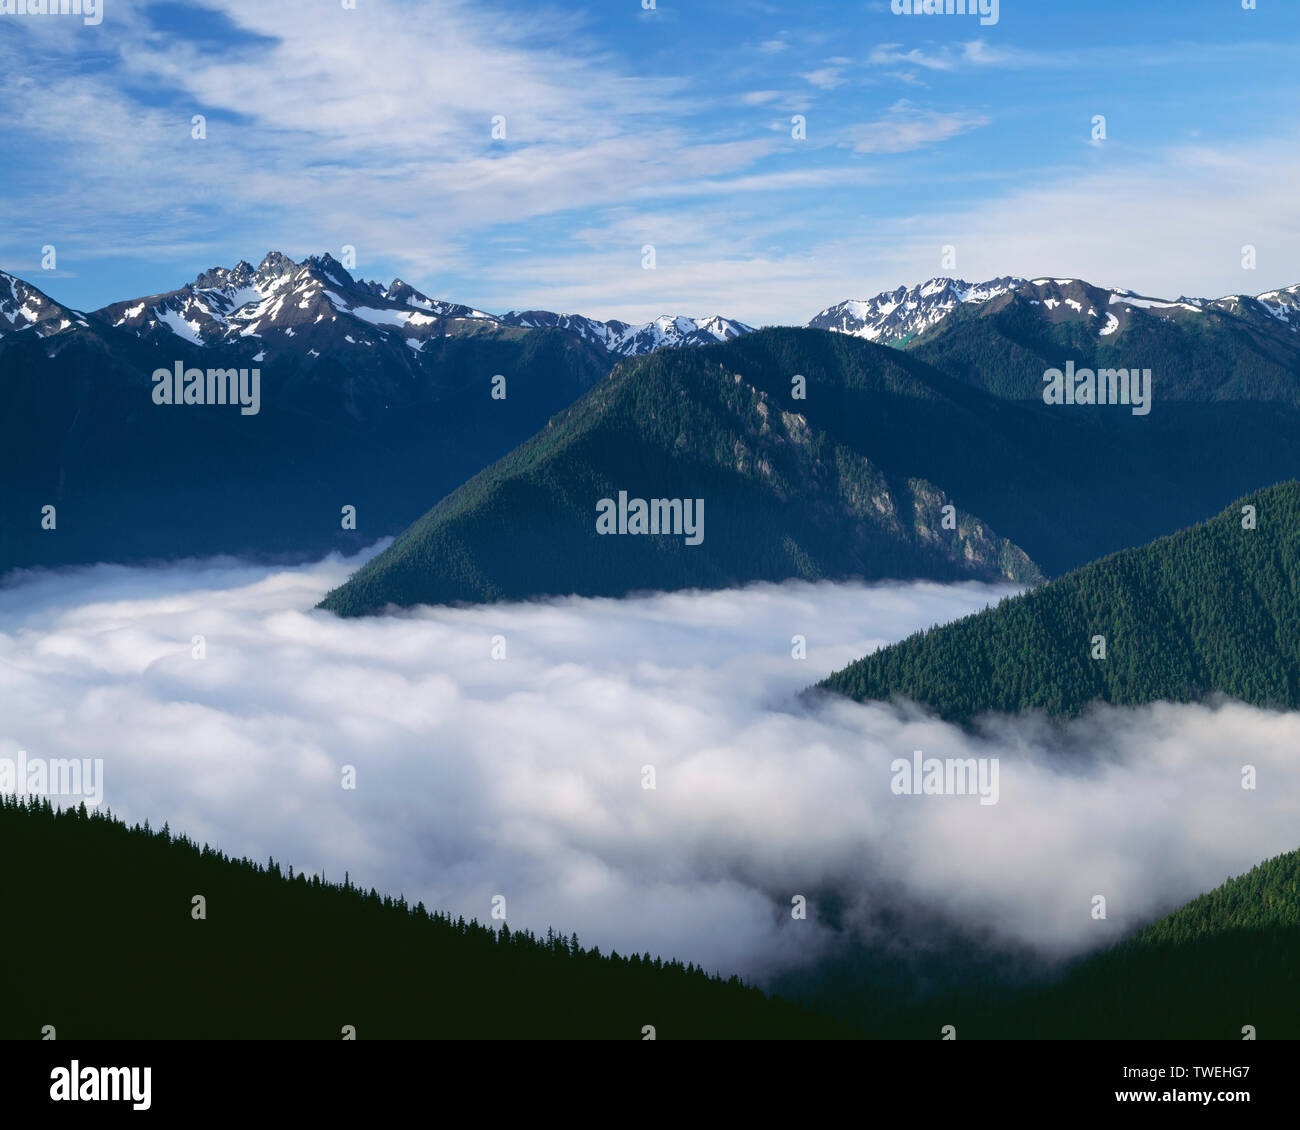 USA, Washington, Olympic National Park, Morning fog fills converging valley bottoms, view south from Deer Park with Mt. Deception in the upper left. - Stock Image